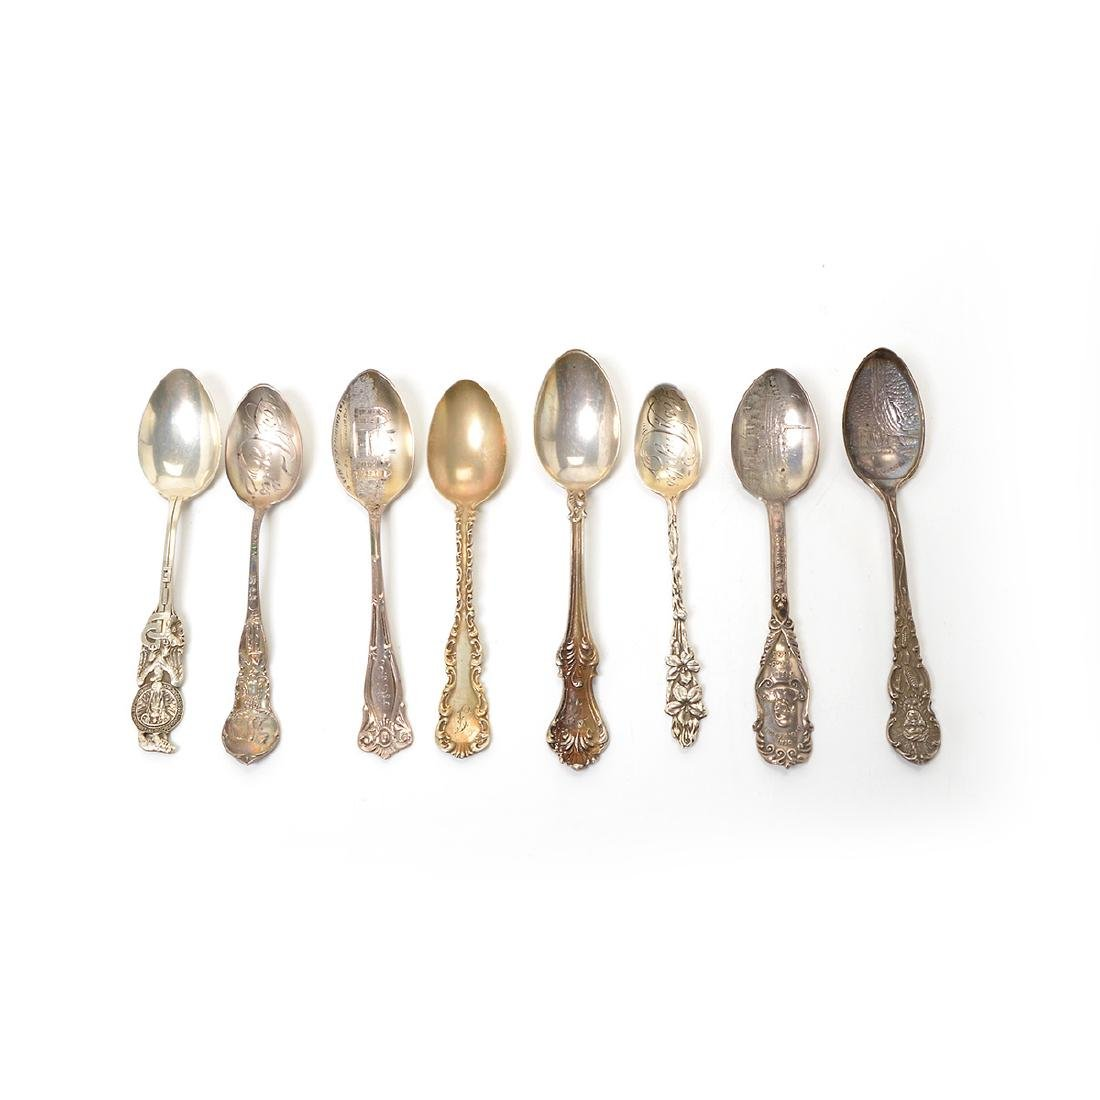 Assorted Coin Silver Flatware with Souvenir Spoons - 5